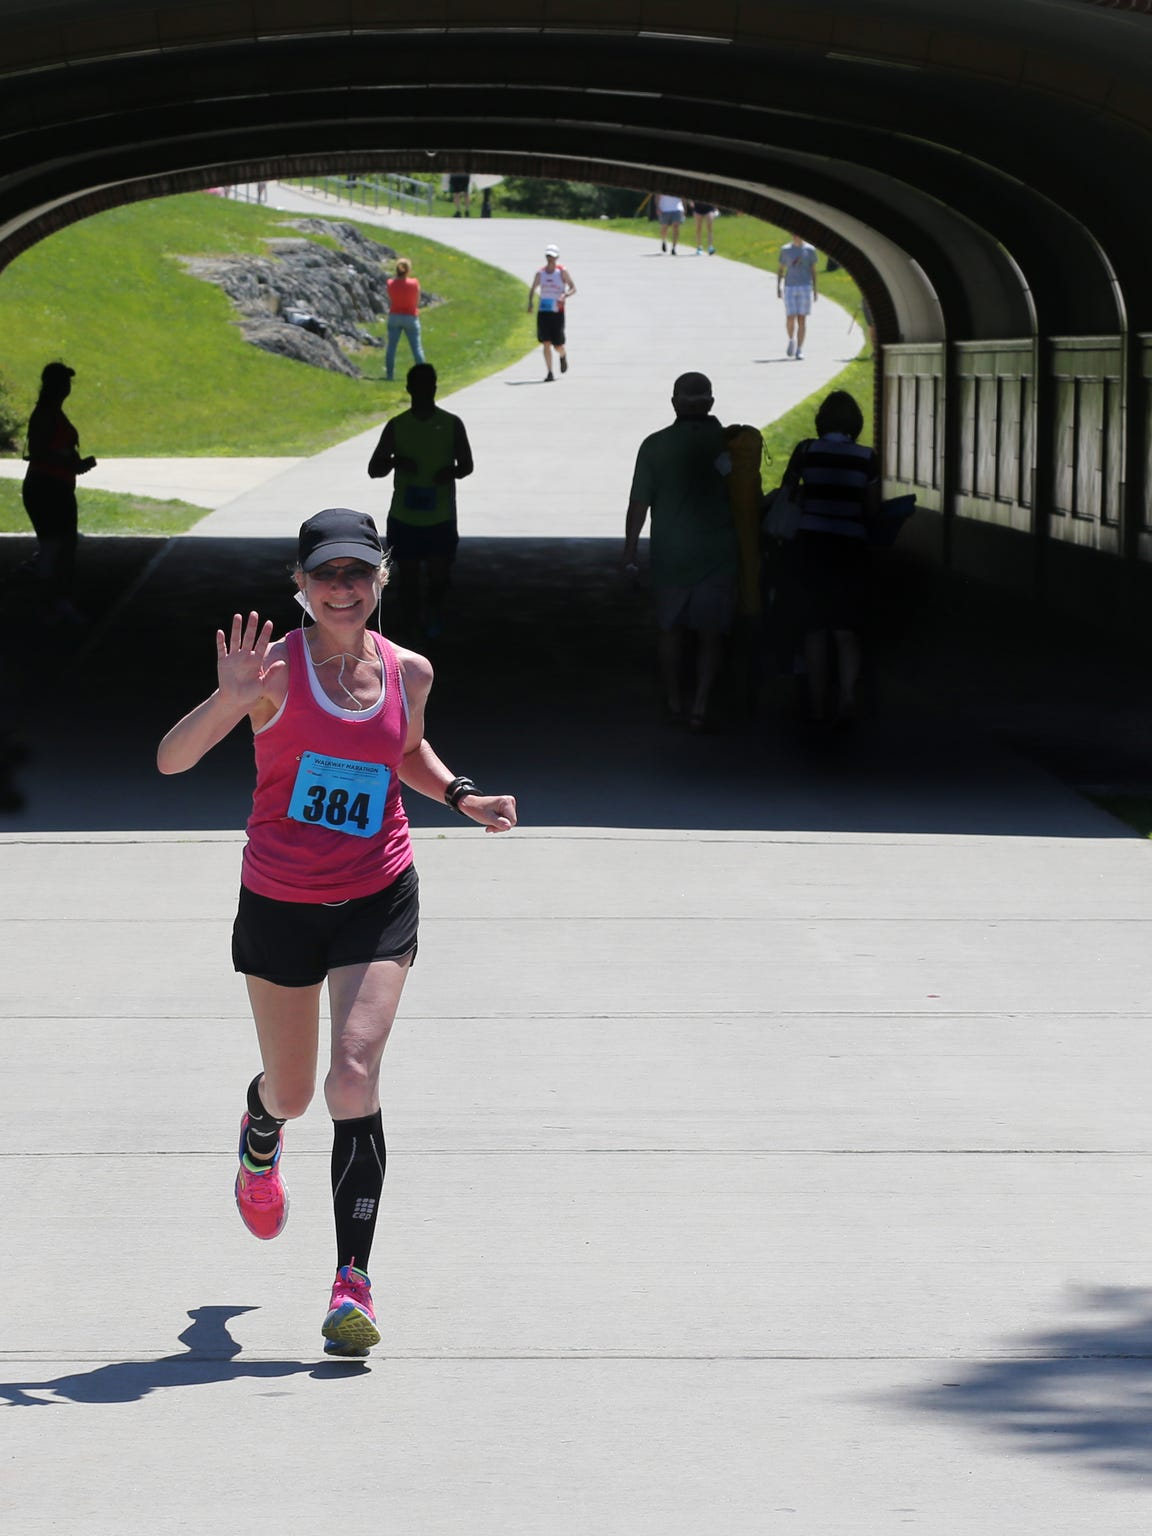 Michelle Zechman heads to the finish of the Walkway Marathon in Poughkeepsie, N.Y., where she qualified for the Boston Marathon.